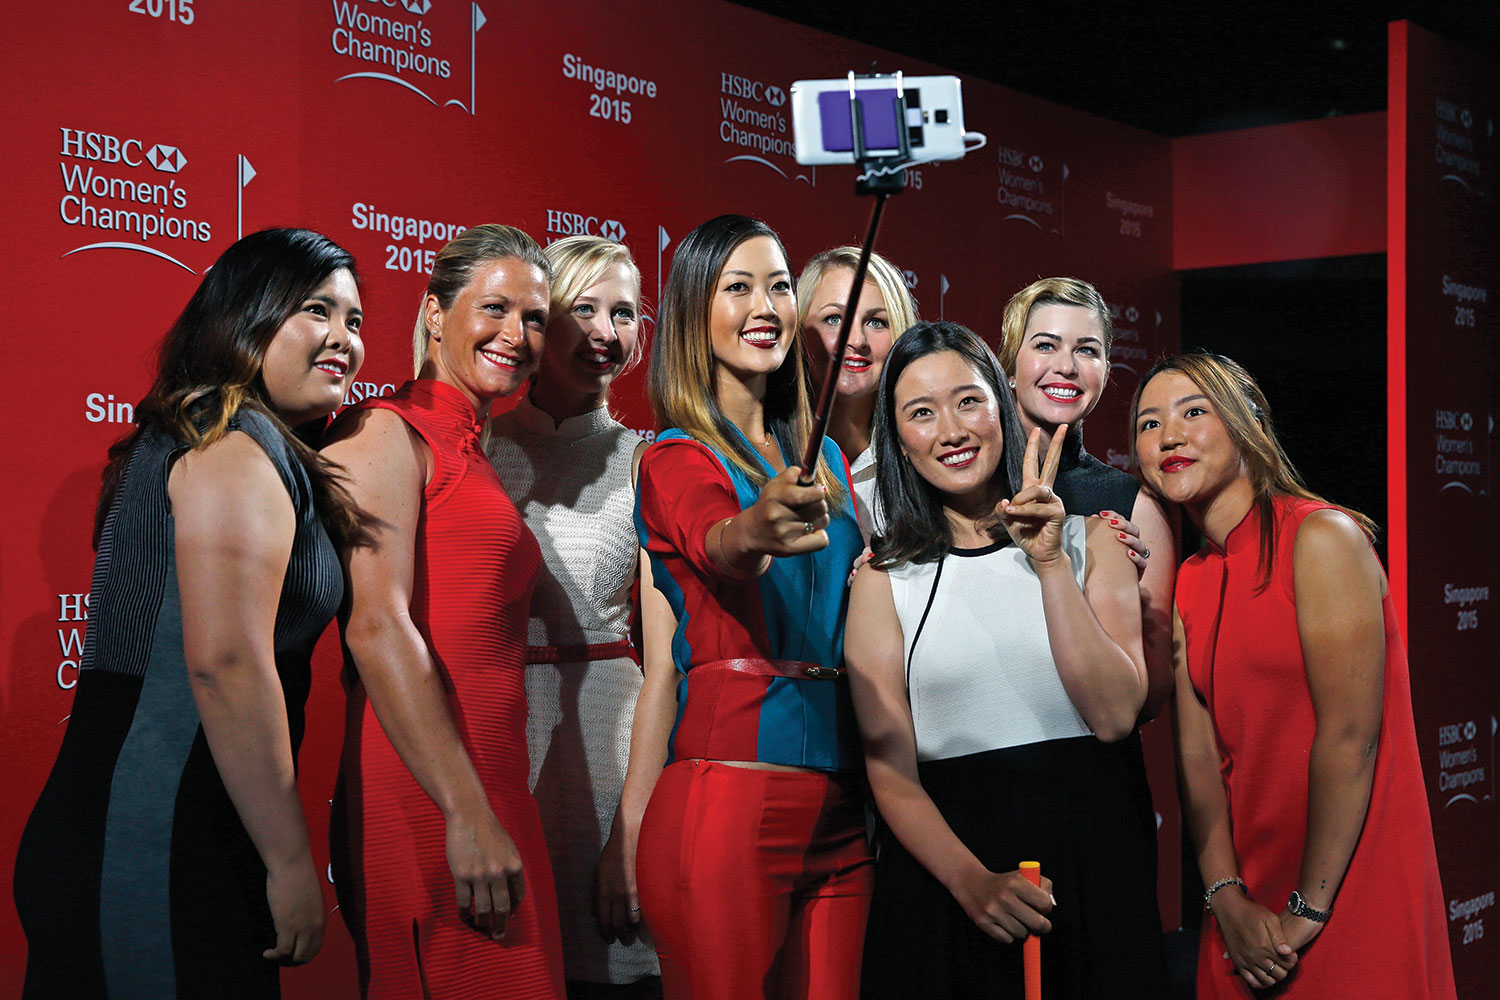 """LPGA players have been warned """"appropriate attire should be worn to pro-am parties"""" and that they should be dressing themselves to """"present a professional image."""""""